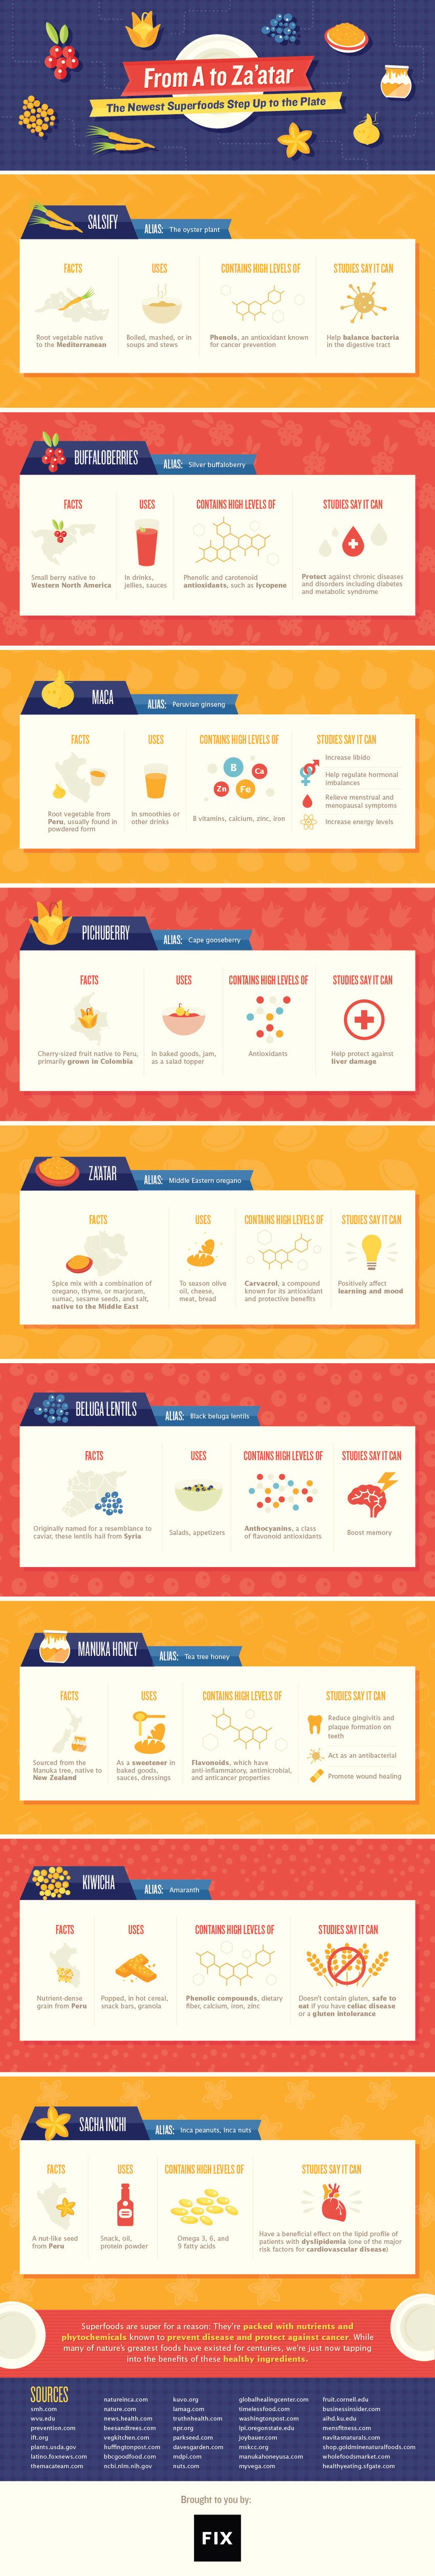 ns_infographic_superfoods